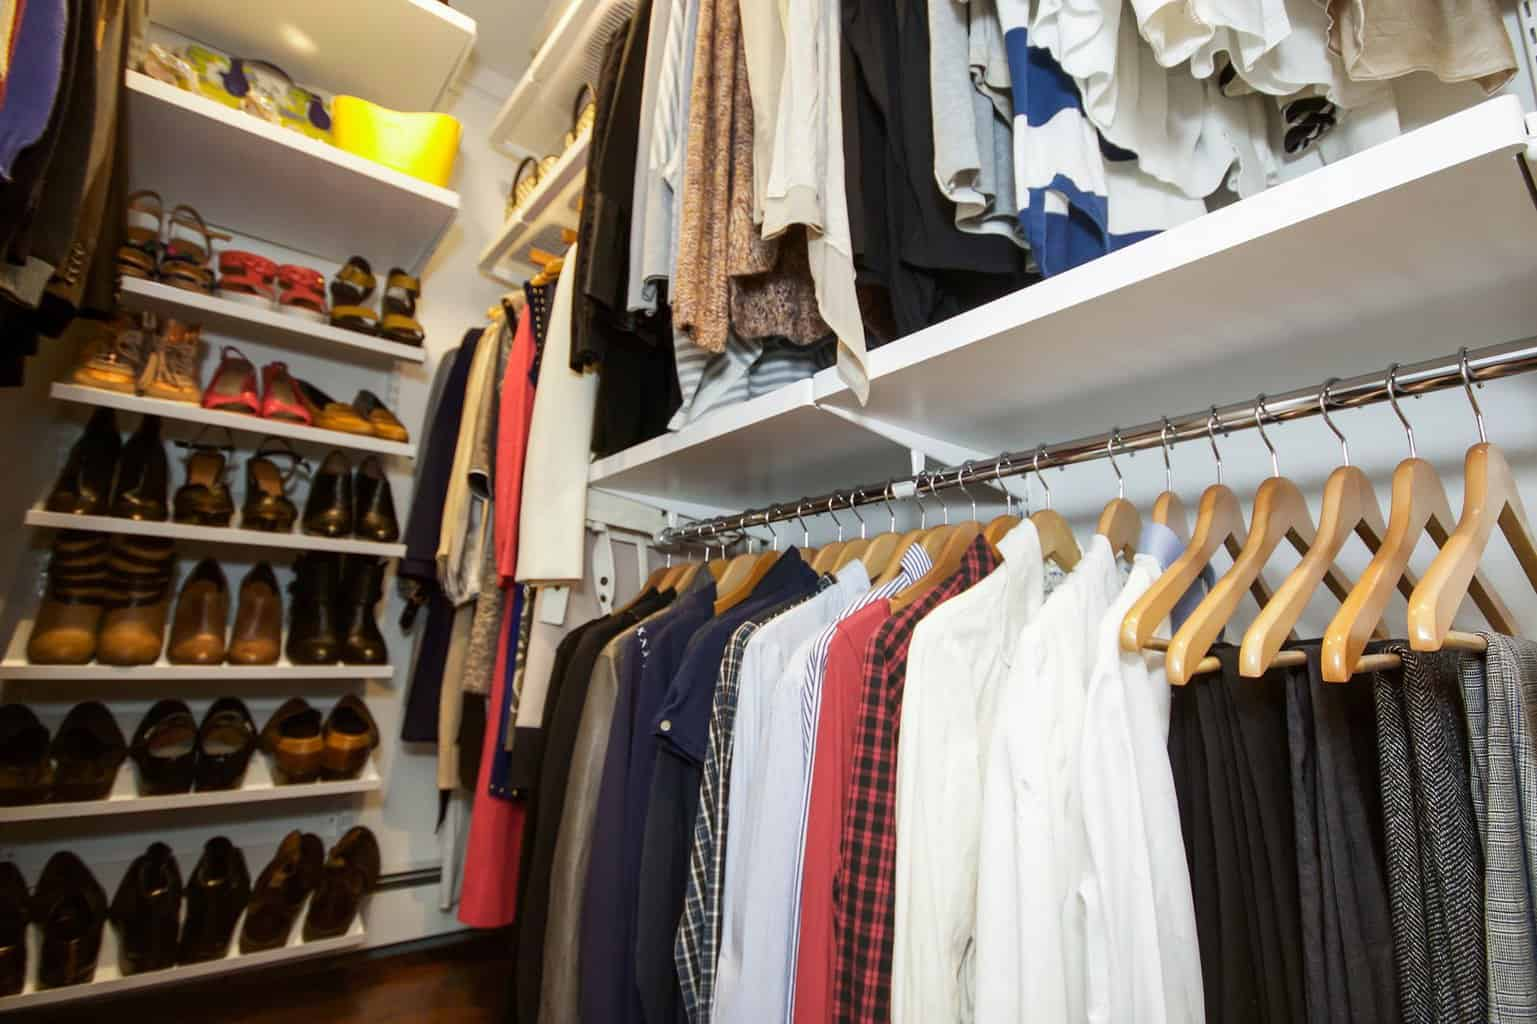 The Very Best Closet Organization System To Follow